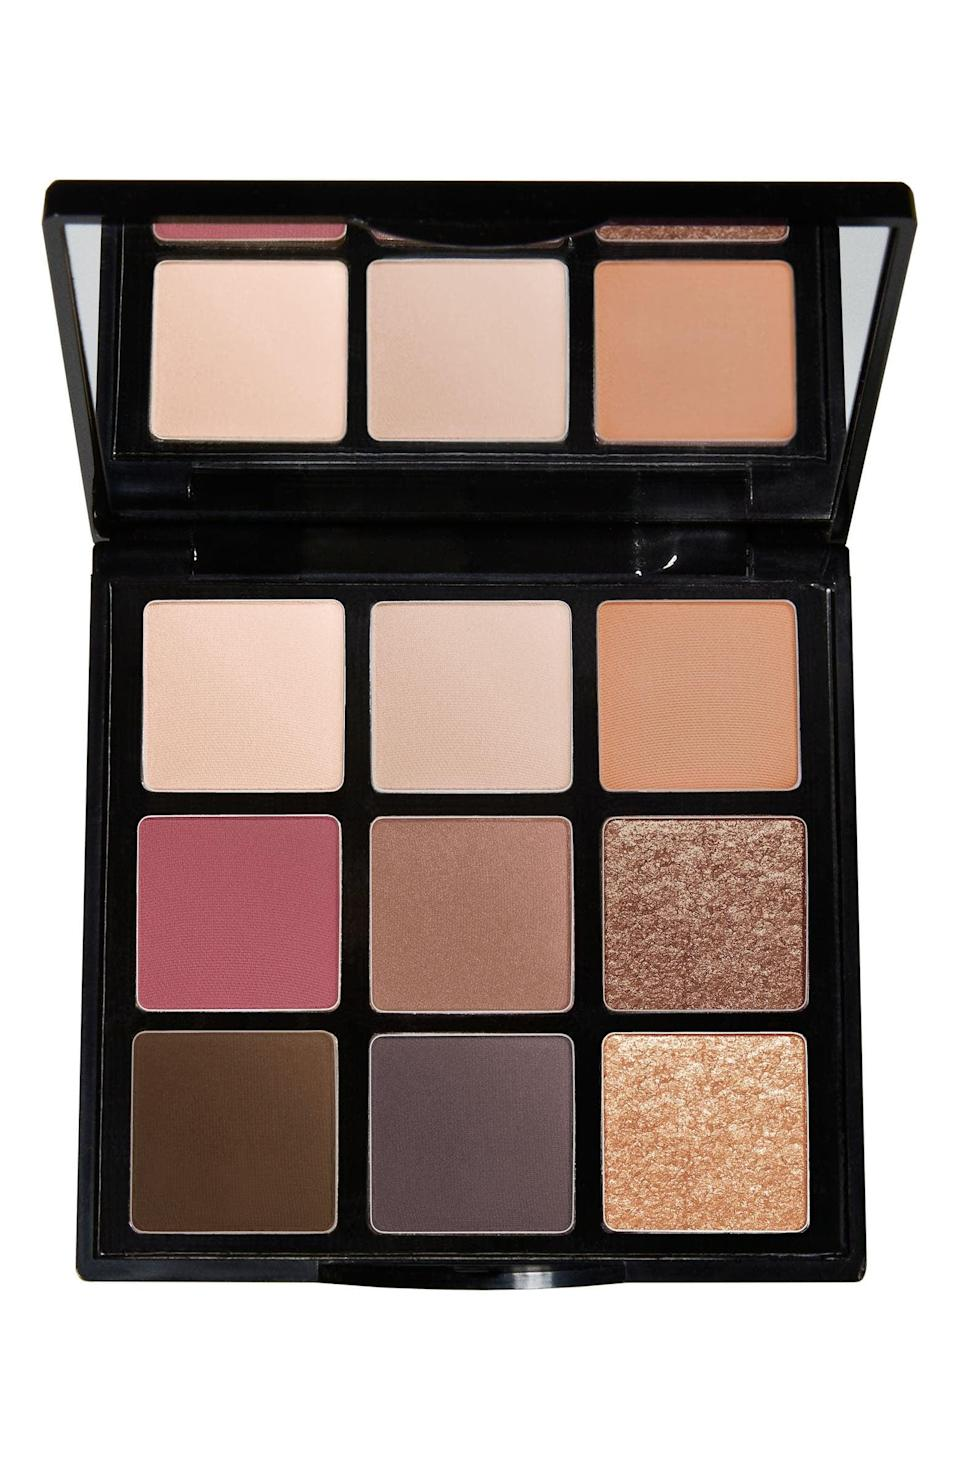 <p>You can't go wrong with the <span>Trish McEvoy Light and Lift Eyeshadow Palette</span> ($68). It's got a classic fall colorway with browns and nudes, jewel tones, and of course, a few shimmers. </p>